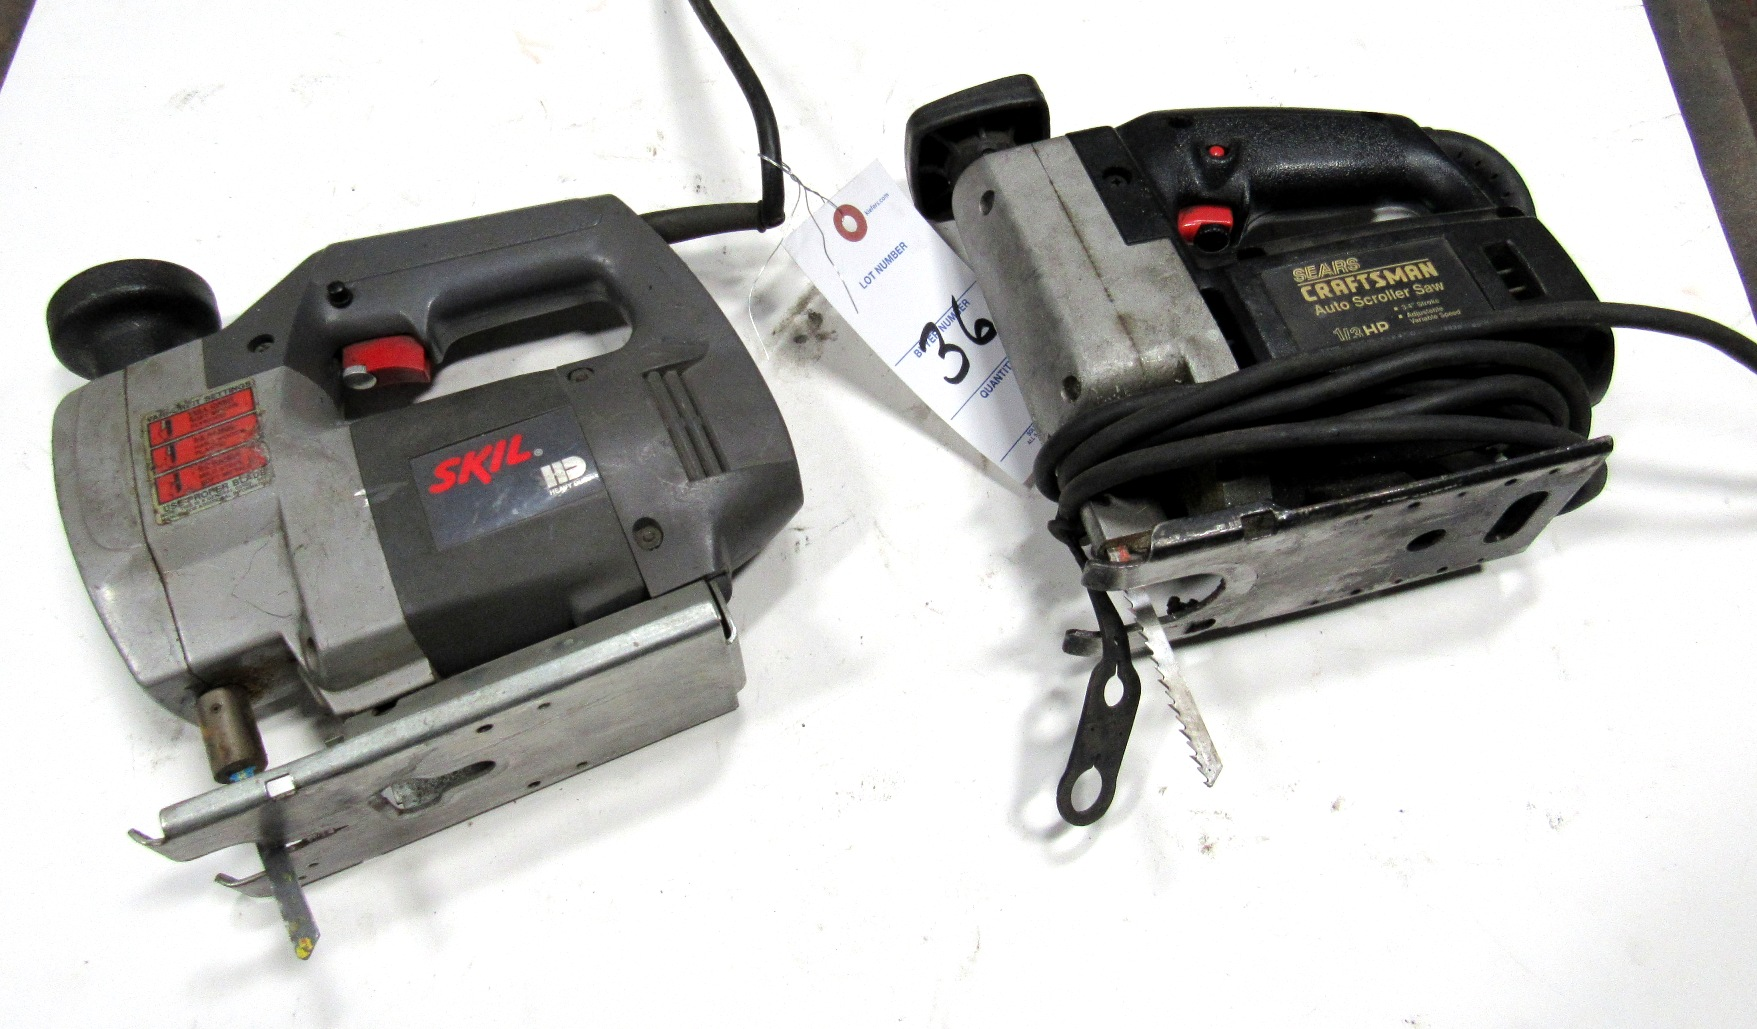 Lot 36 - Skil & Craftsman Electric Scroll Saws